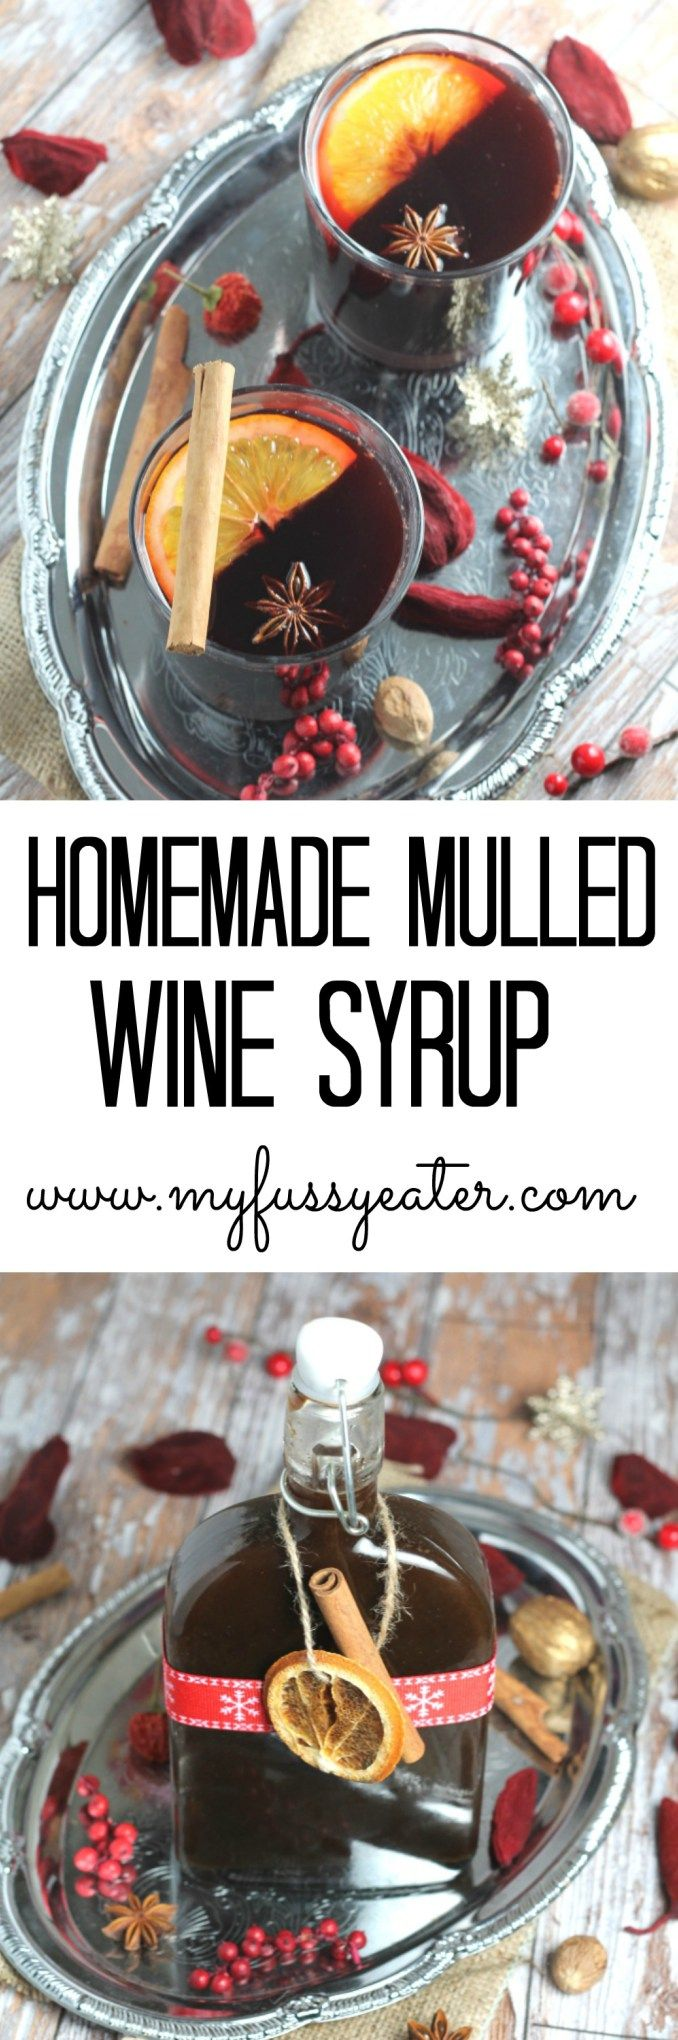 A clean eating and paleo friendly homemade mulled syrup and mulled wine recipe, made with coconut sugar